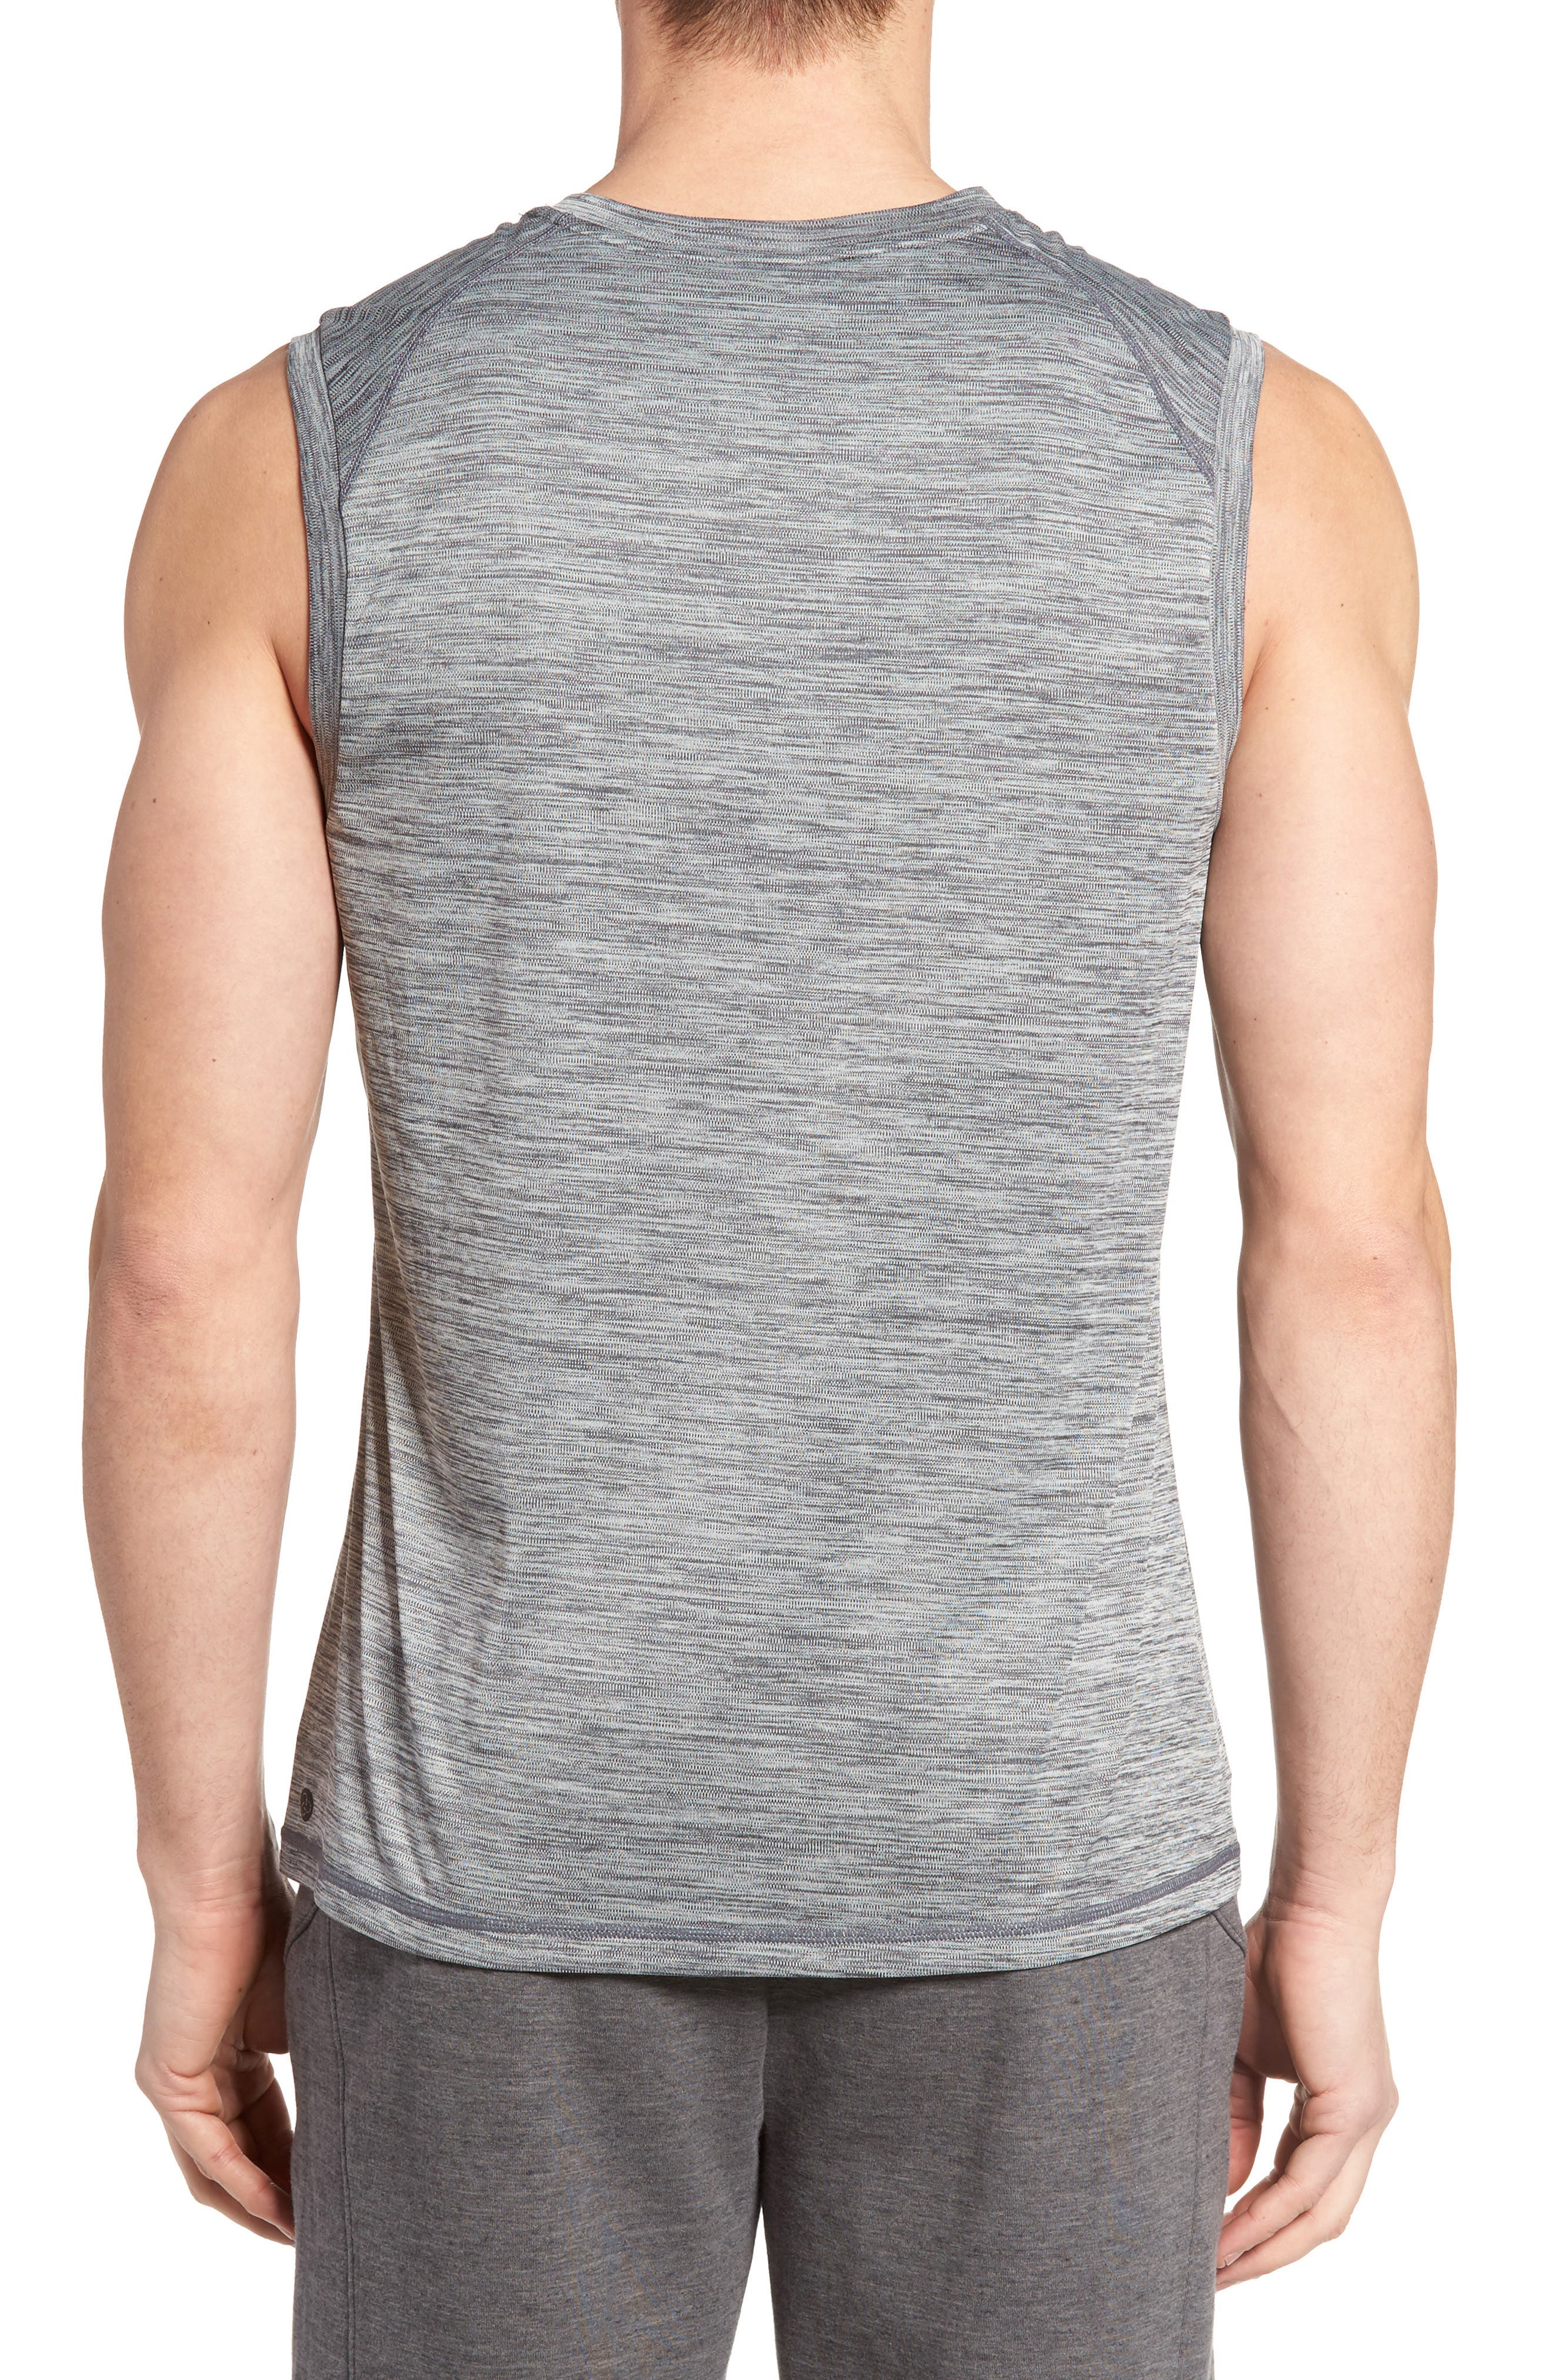 Triplite Muscle T-Shirt,                             Alternate thumbnail 2, color,                             021